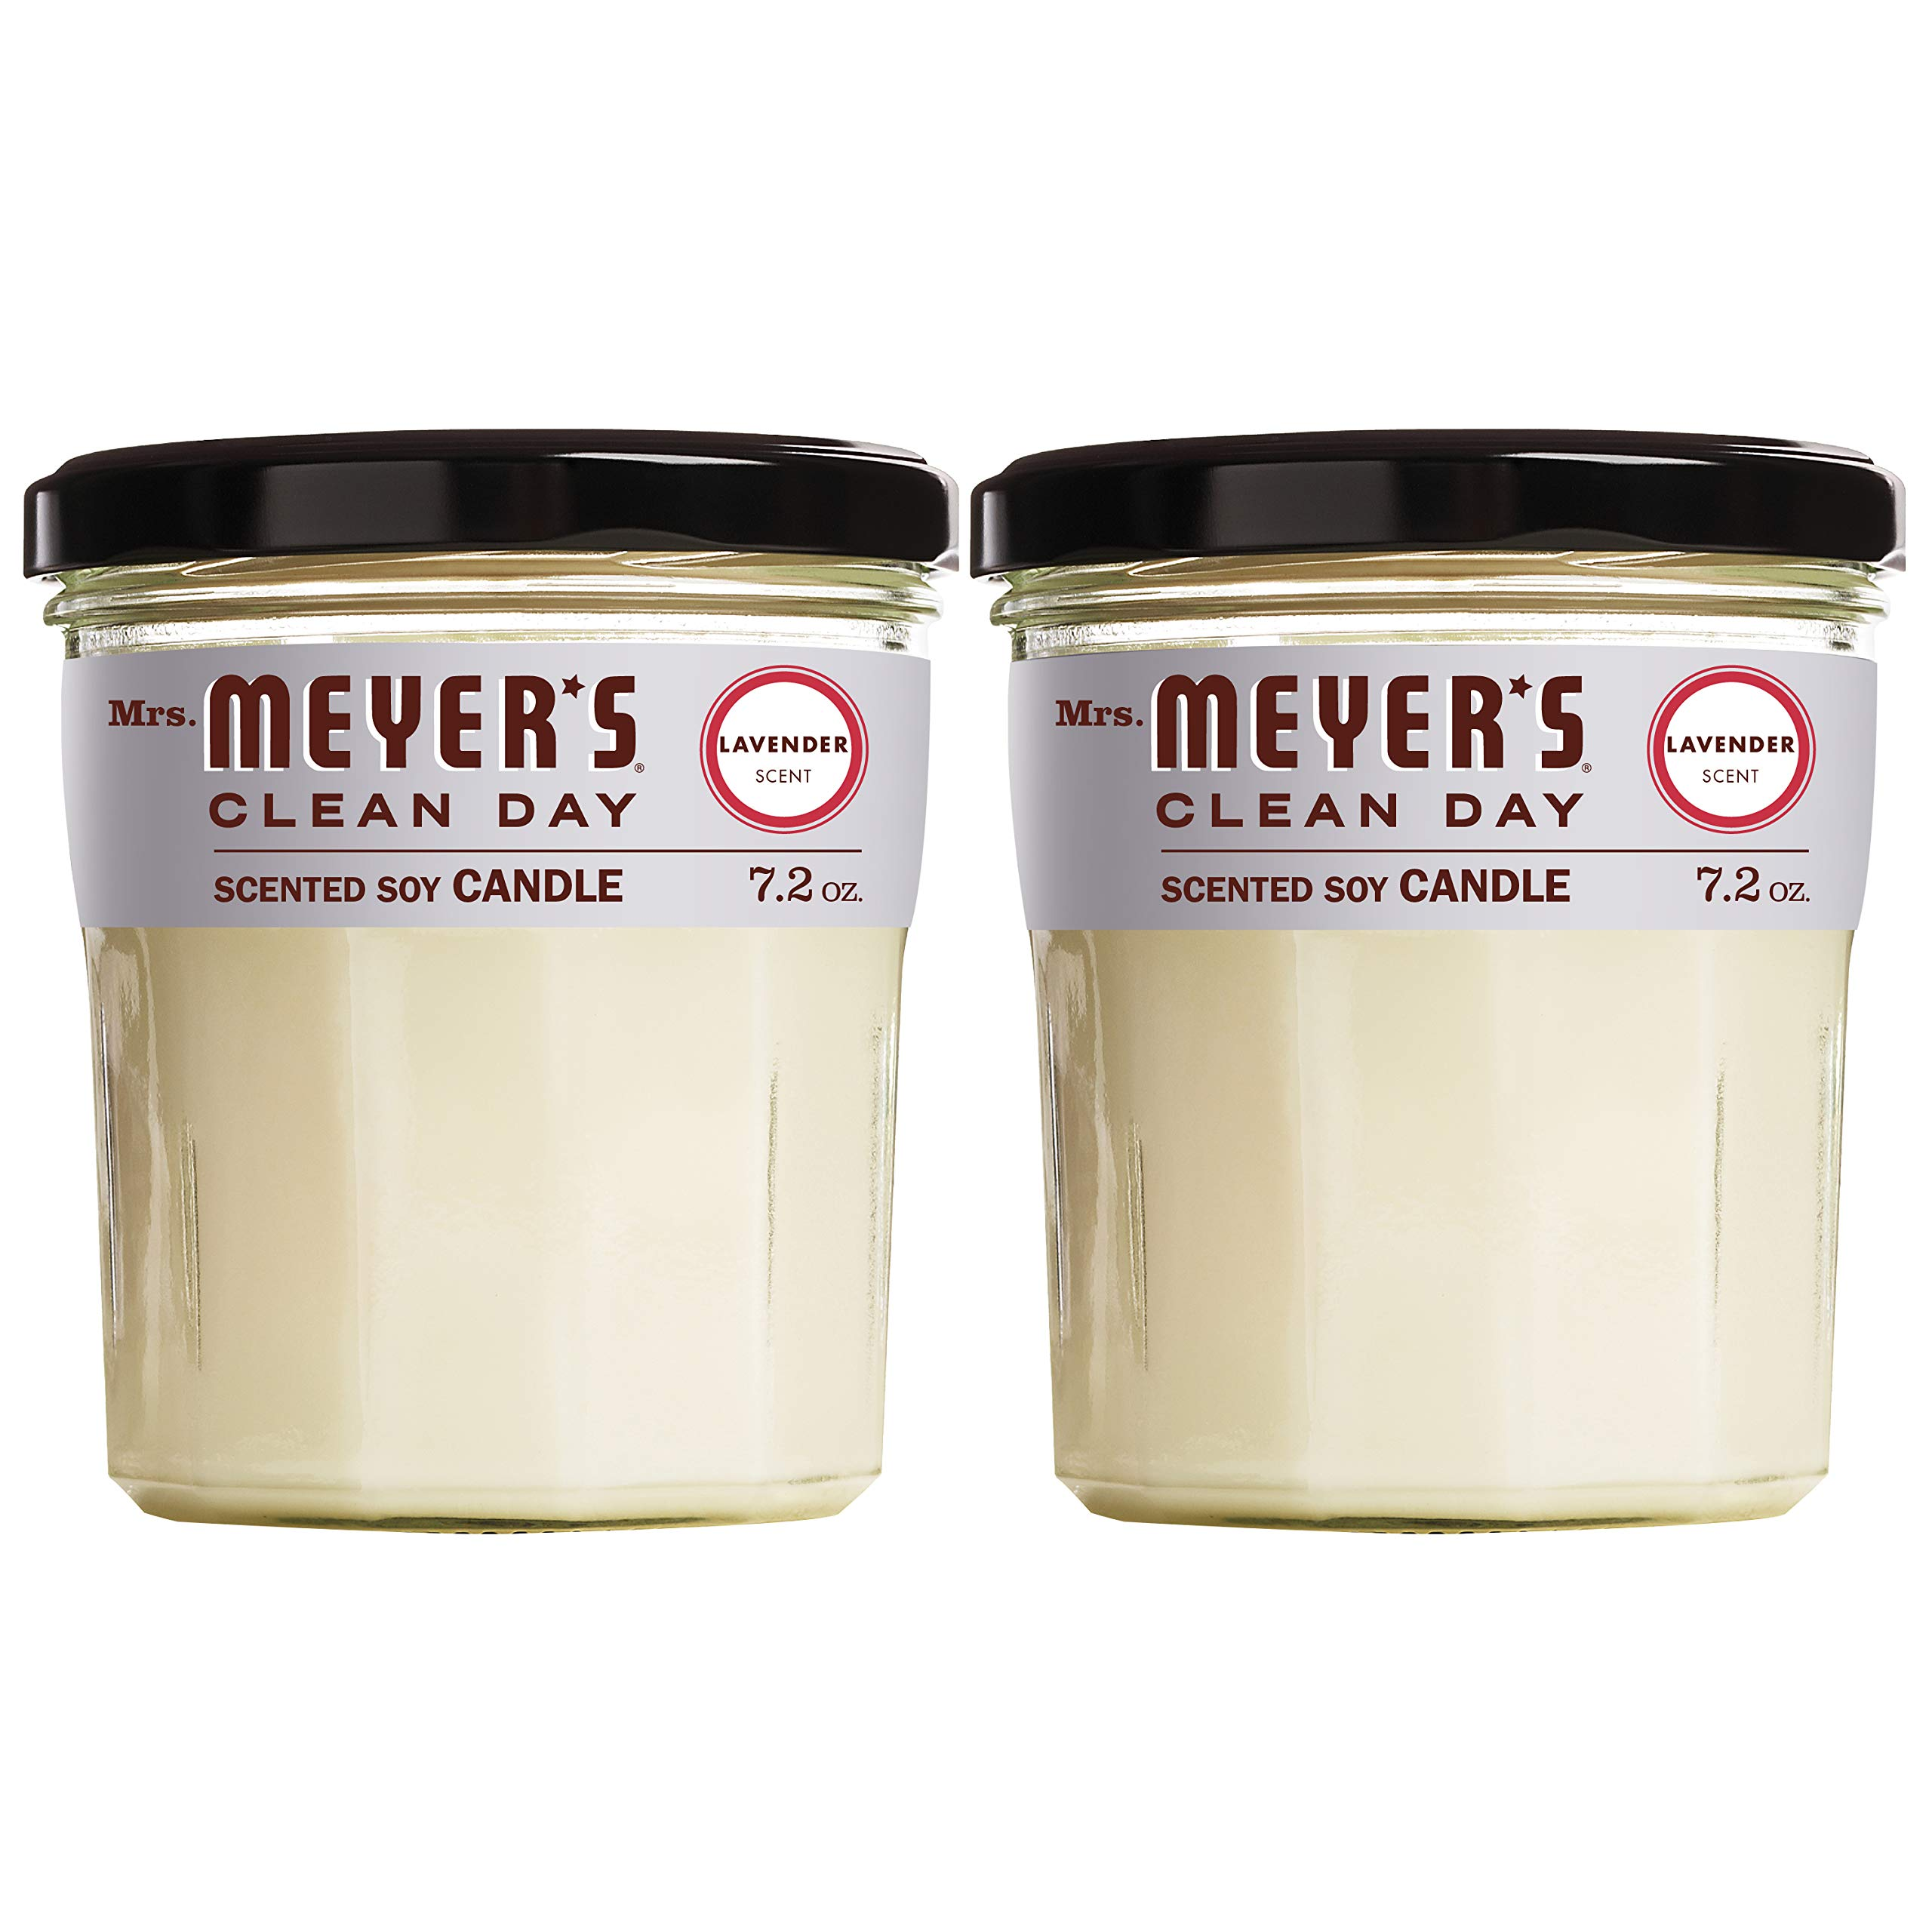 Mrs Meyers Scented Soy Candle (Scented Soy Candle) by Mrs. Meyer's Clean Day